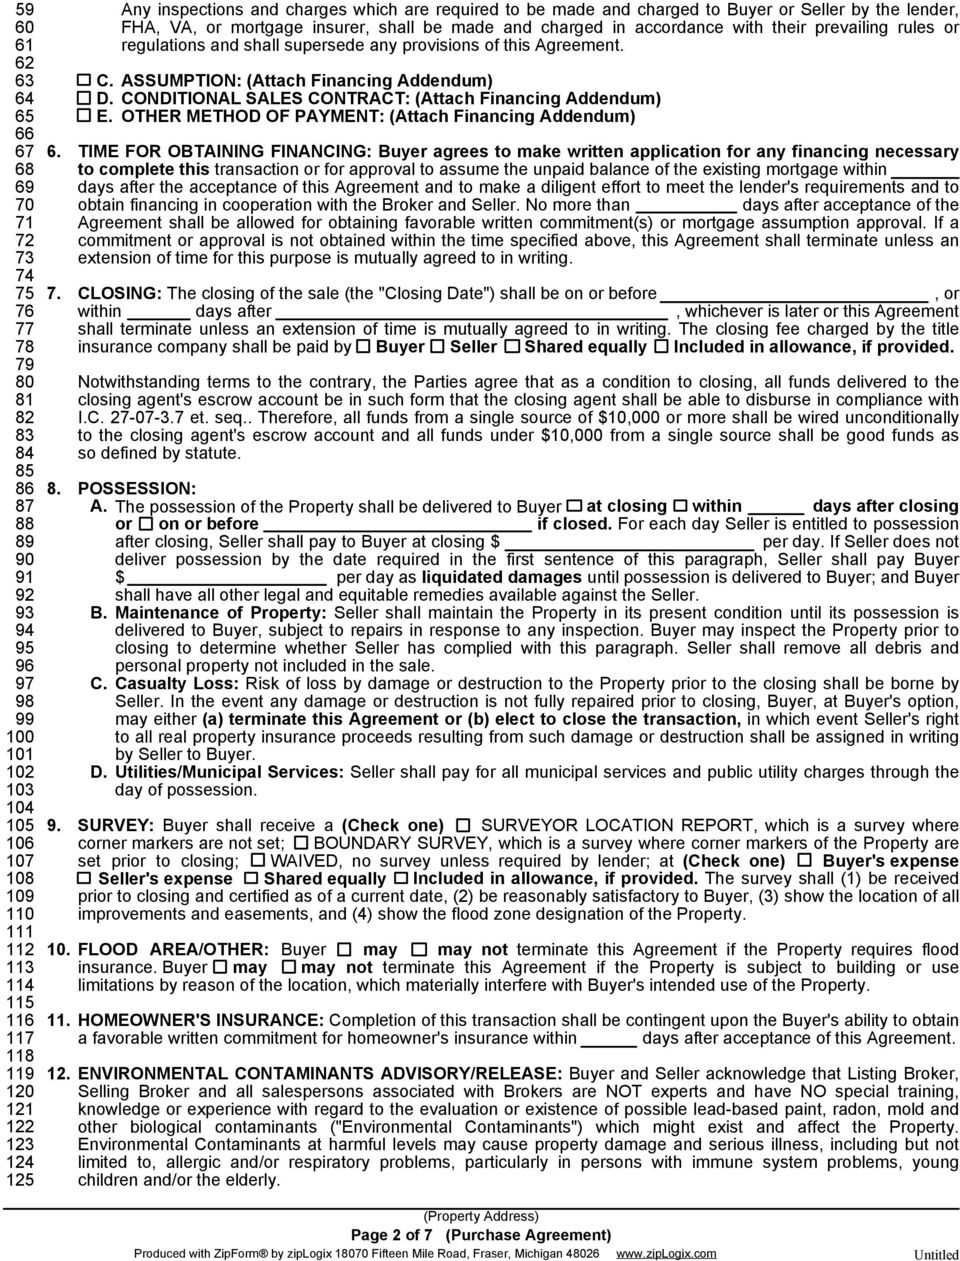 PURCHASE AGREEMENT IMPROVED PROPERTY PDF